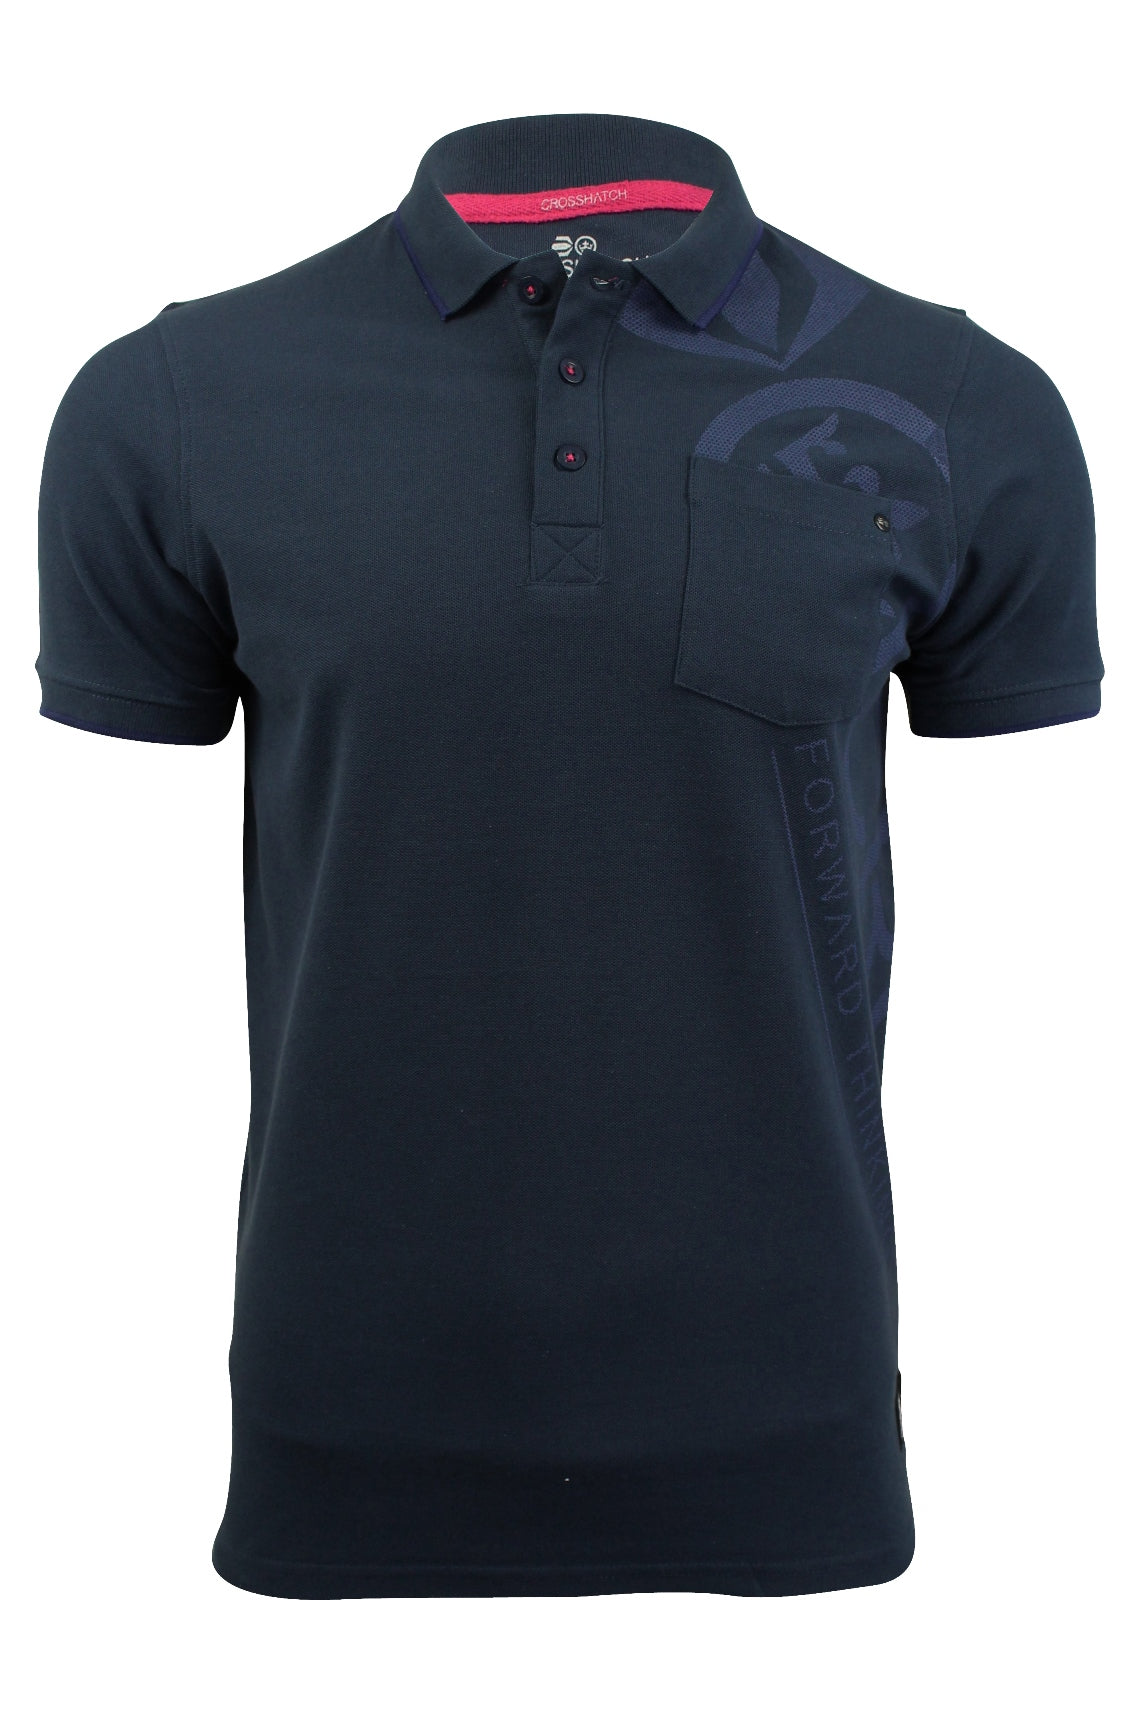 Mens Polo Shirt by Crosshatch 'Pacific Polo' Short Sleeved-2